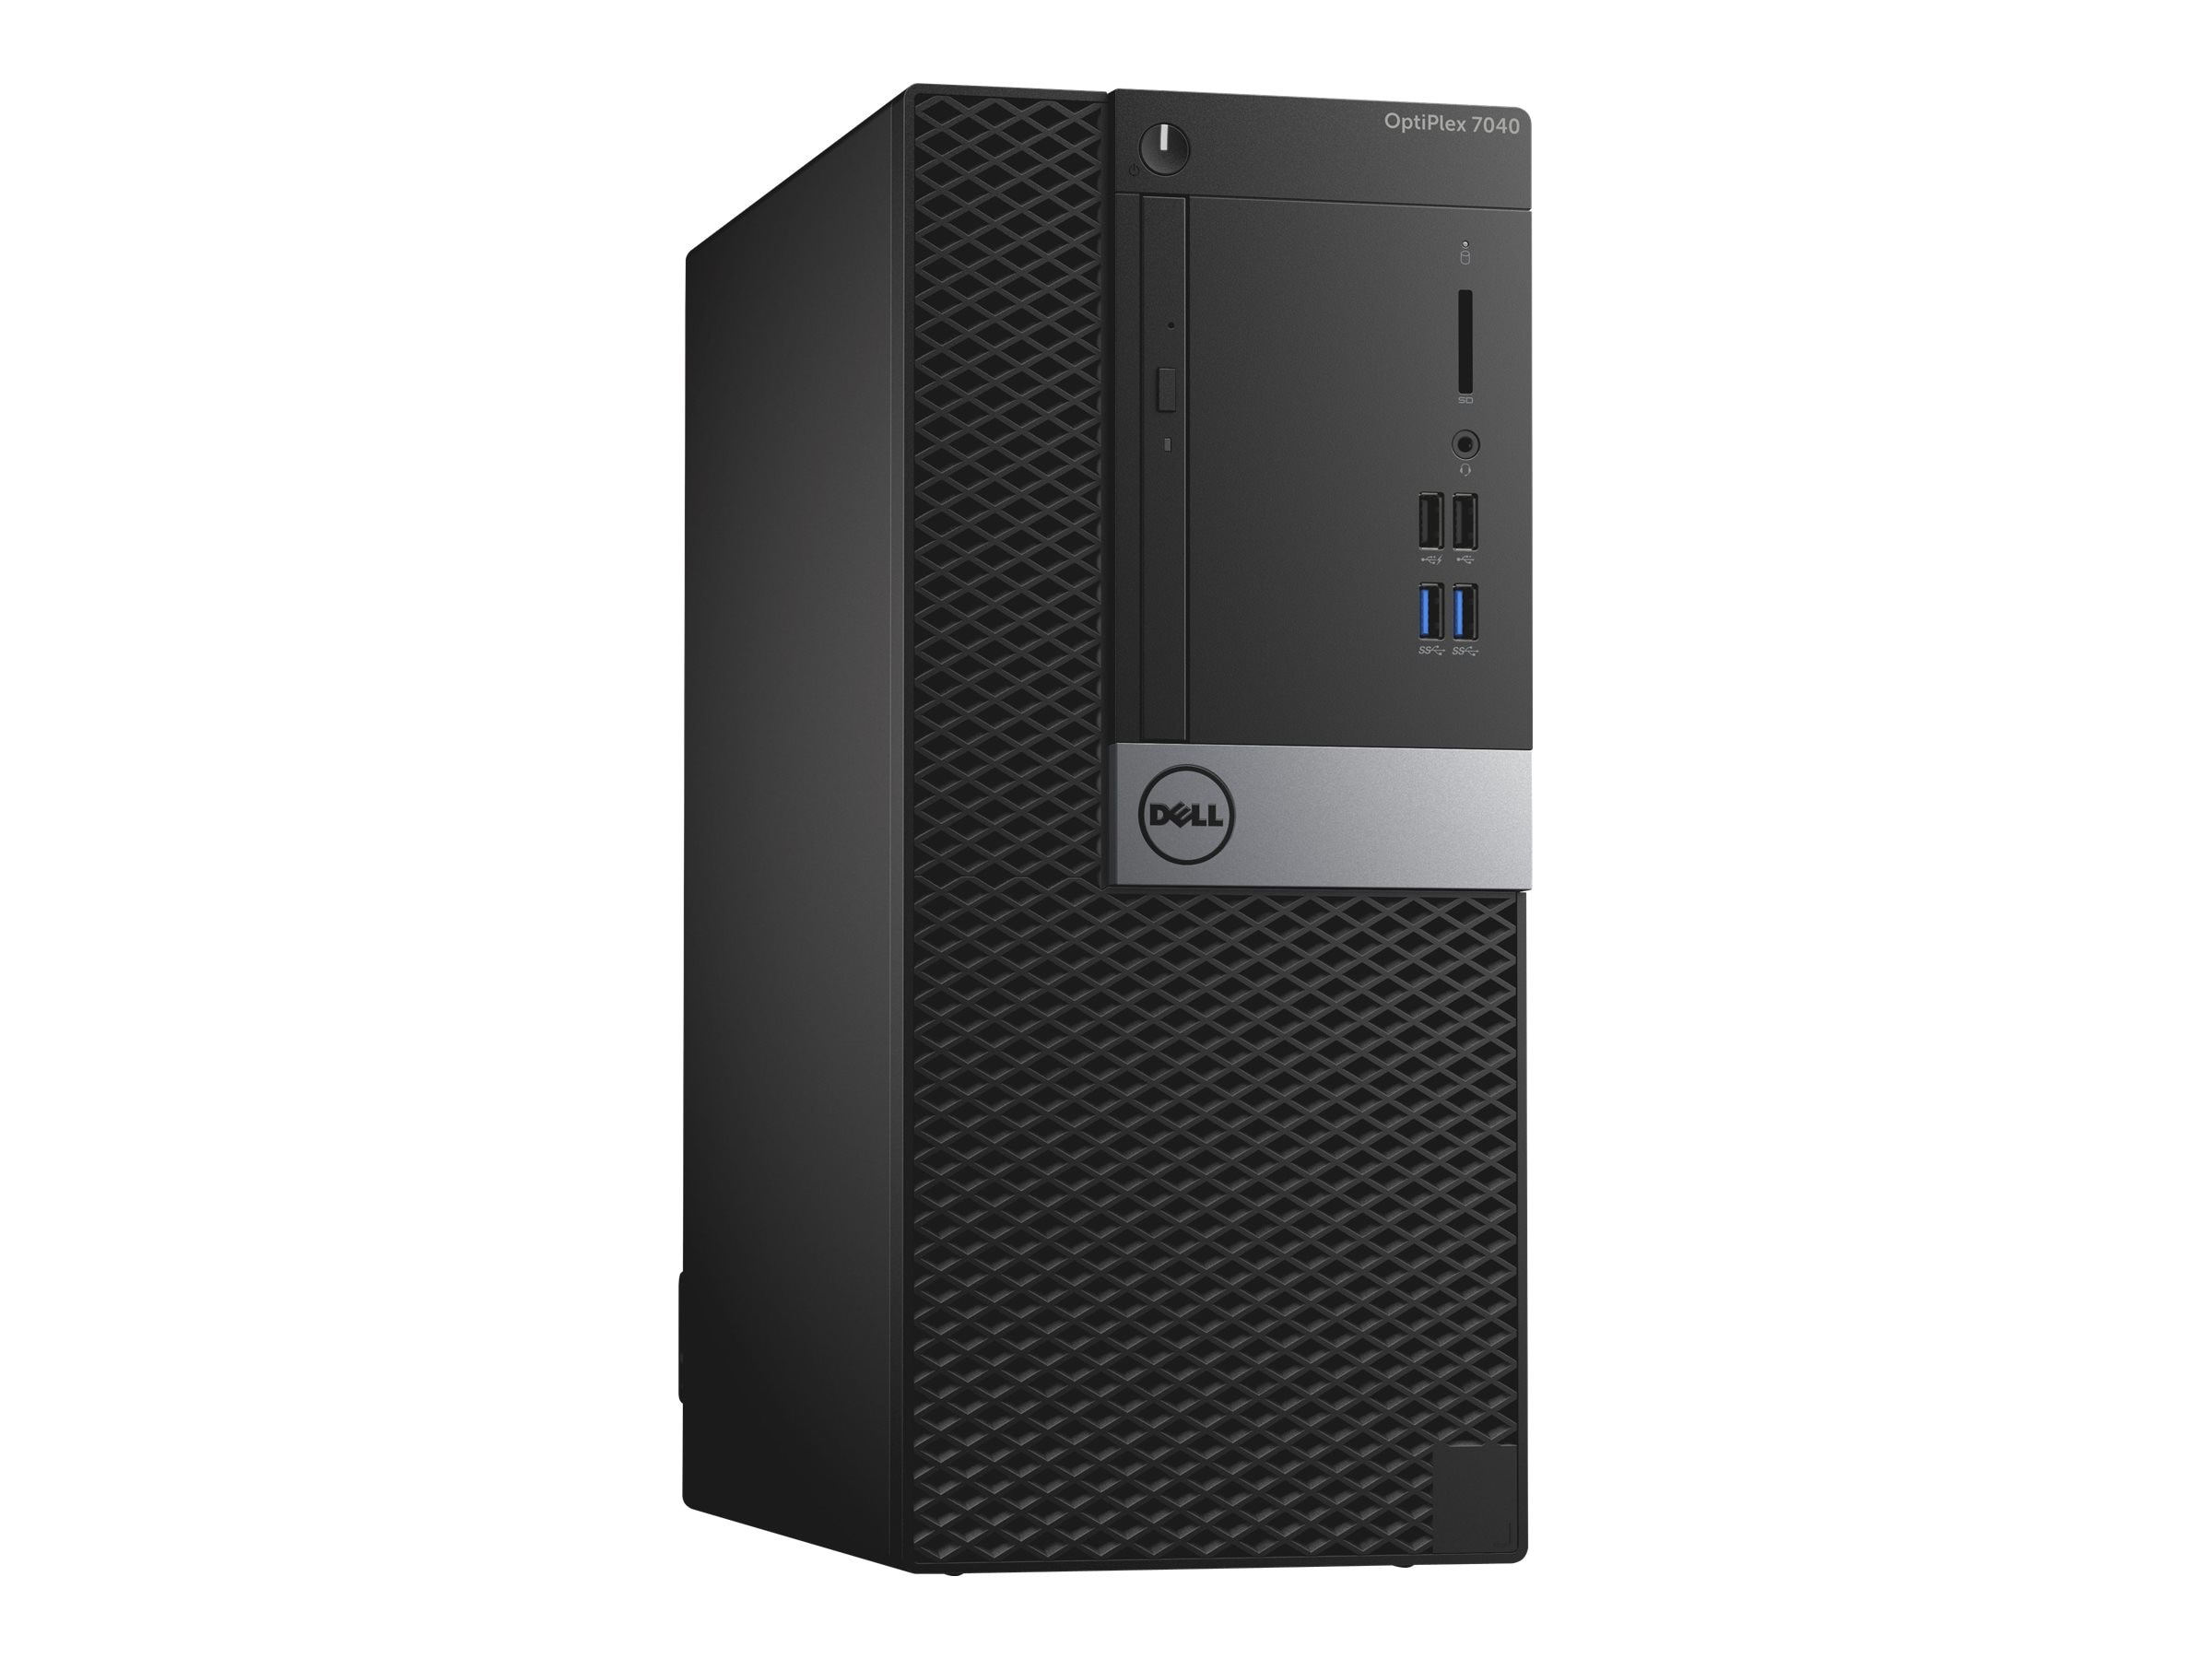 Dell OptiPlex 7040 3.2GHz Core i5 8GB RAM 500GB hard drive, 27R1V